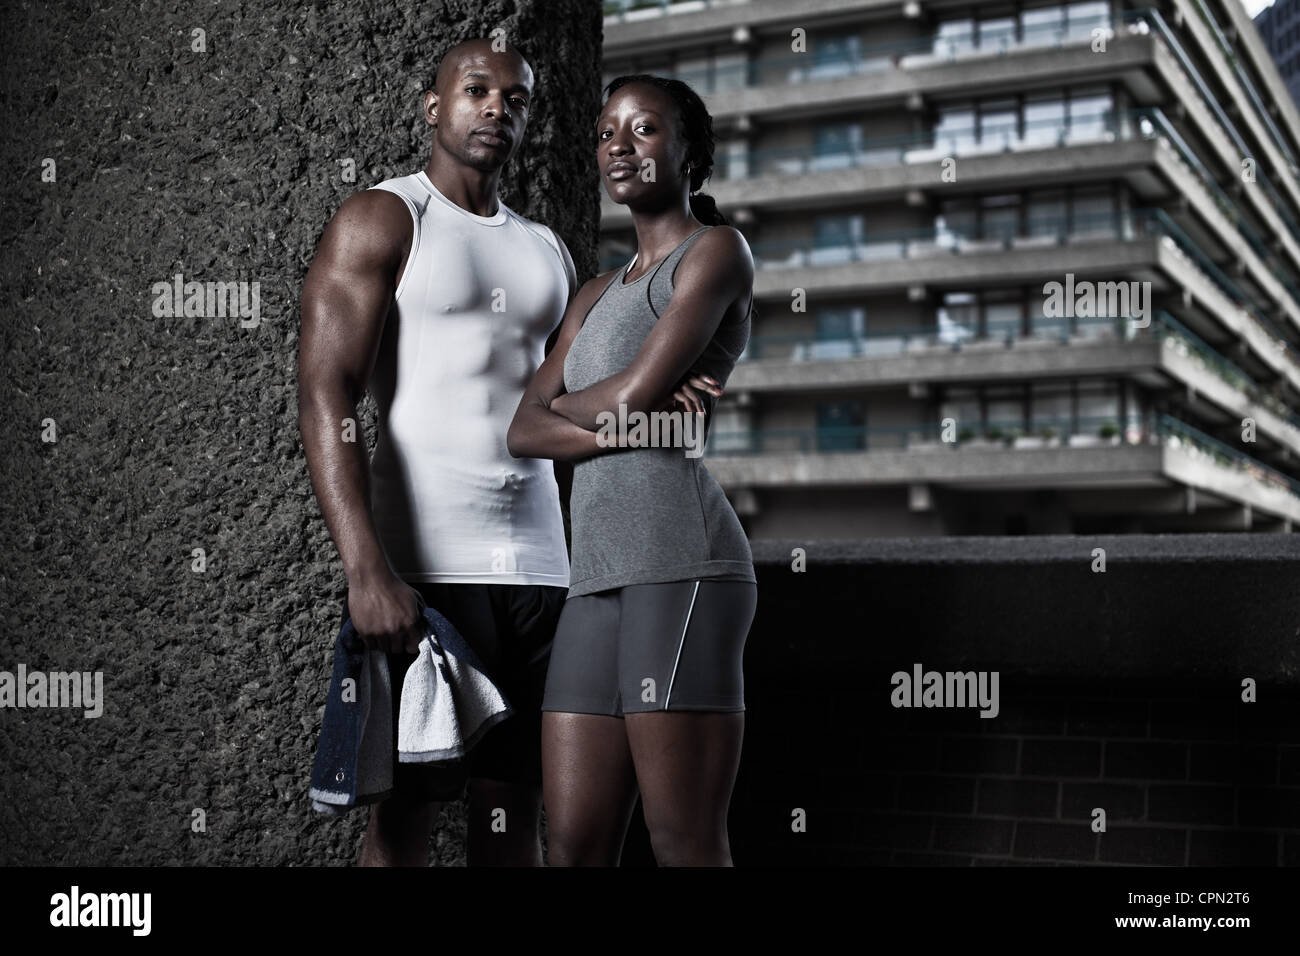 Man and woman in fitness clothing in urban environment - Stock Image